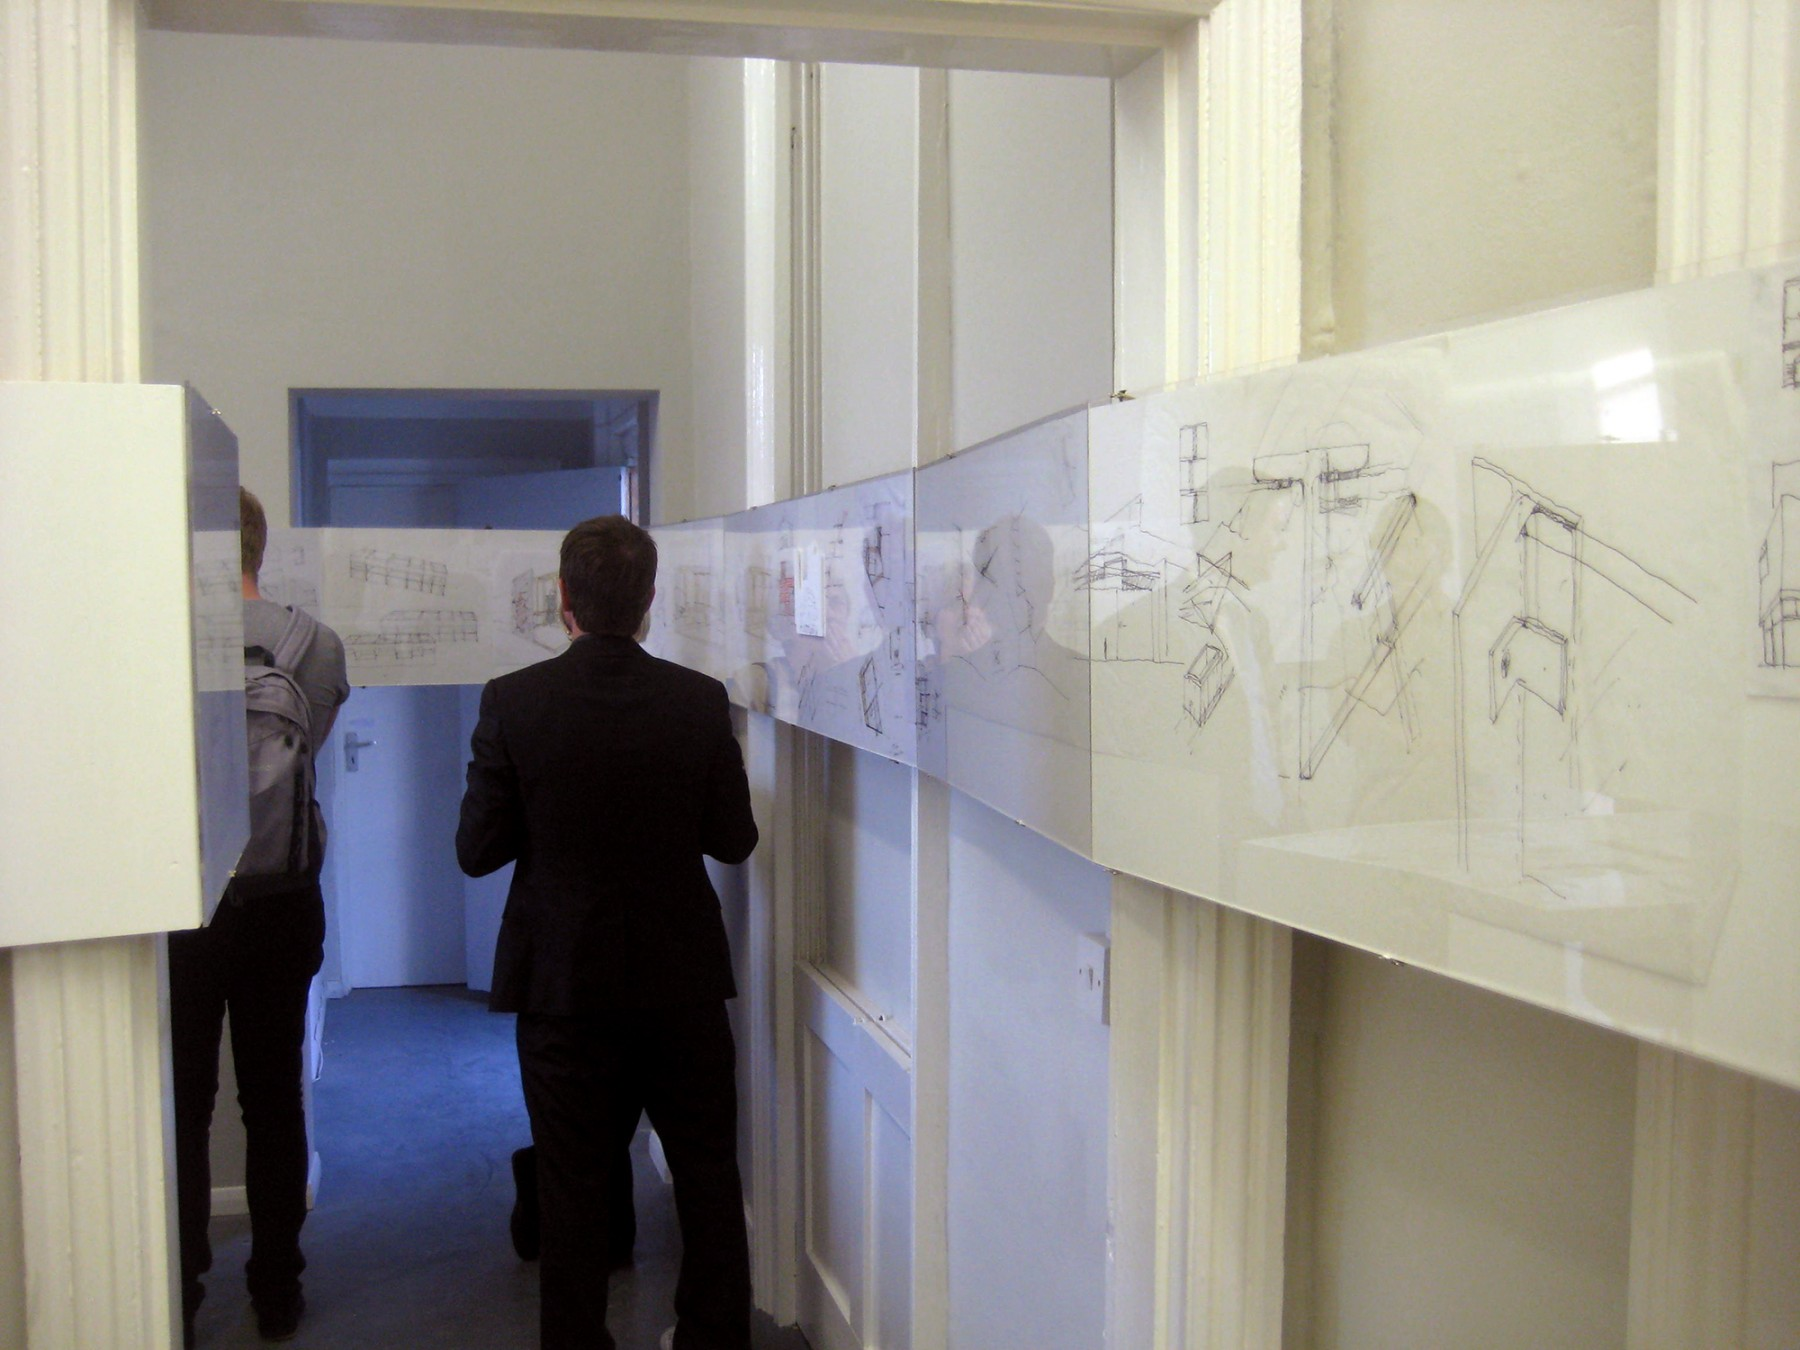 Jamie-Fobert-Architects-C4RD-Exhibition-Architecture-Sketch-Books-sketches-opening 2